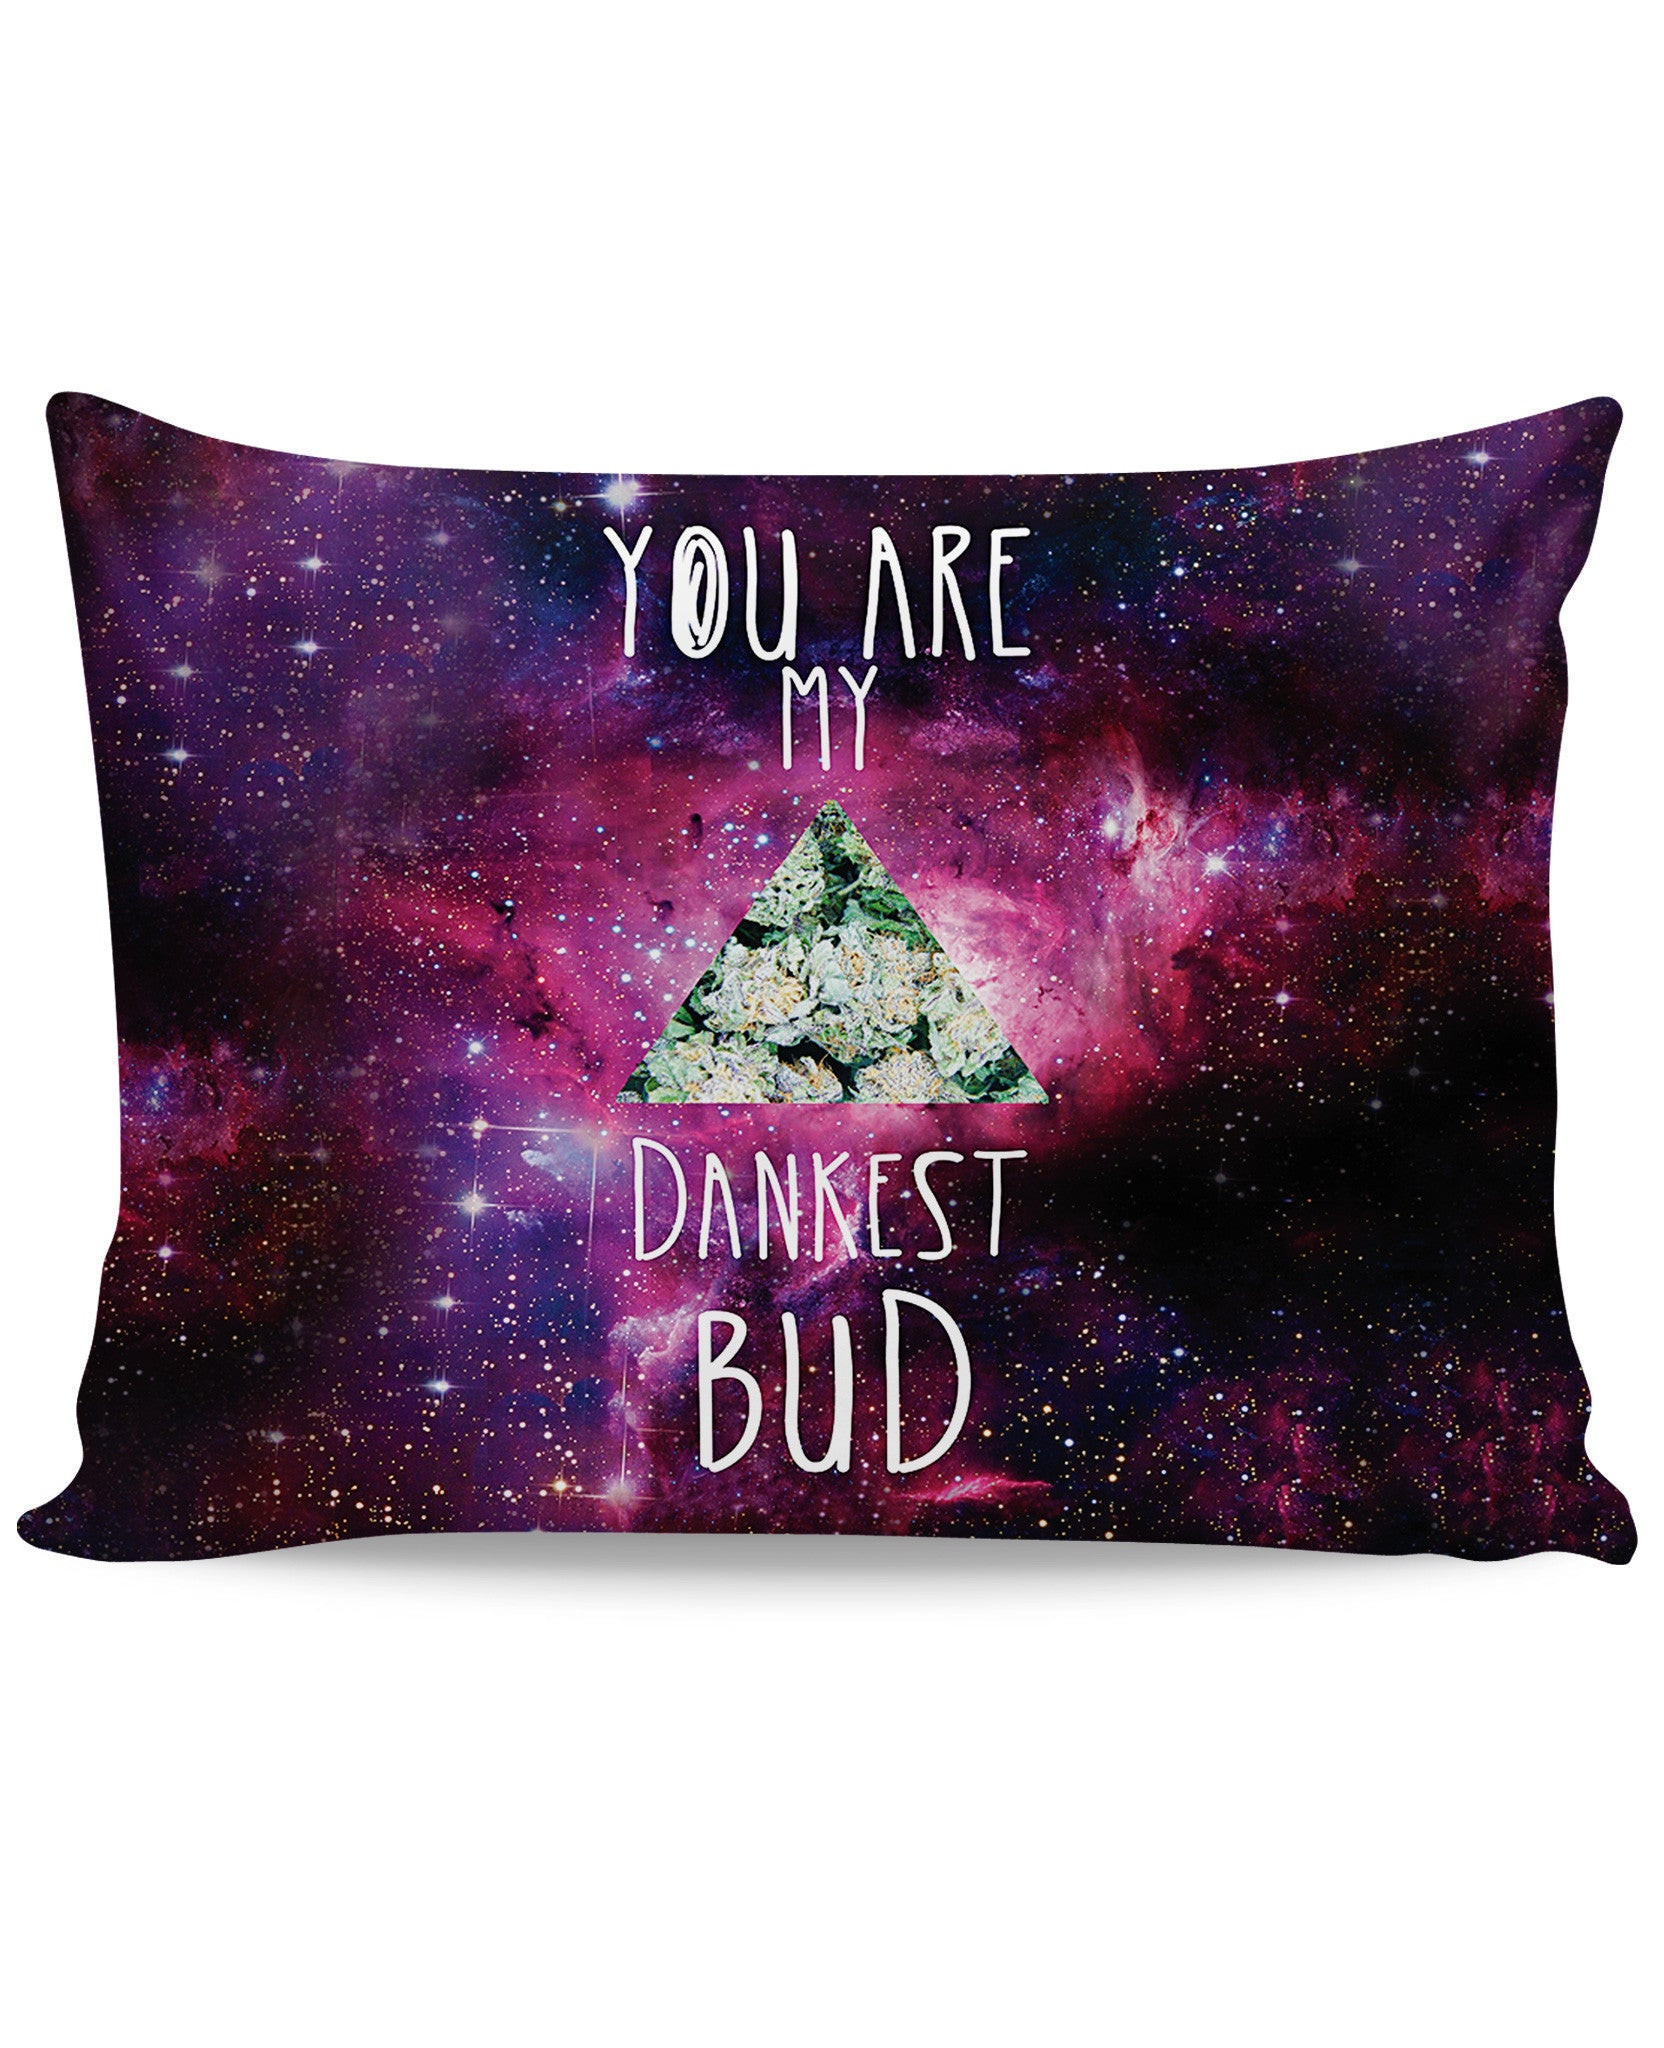 Dankest Bud Pillow Case